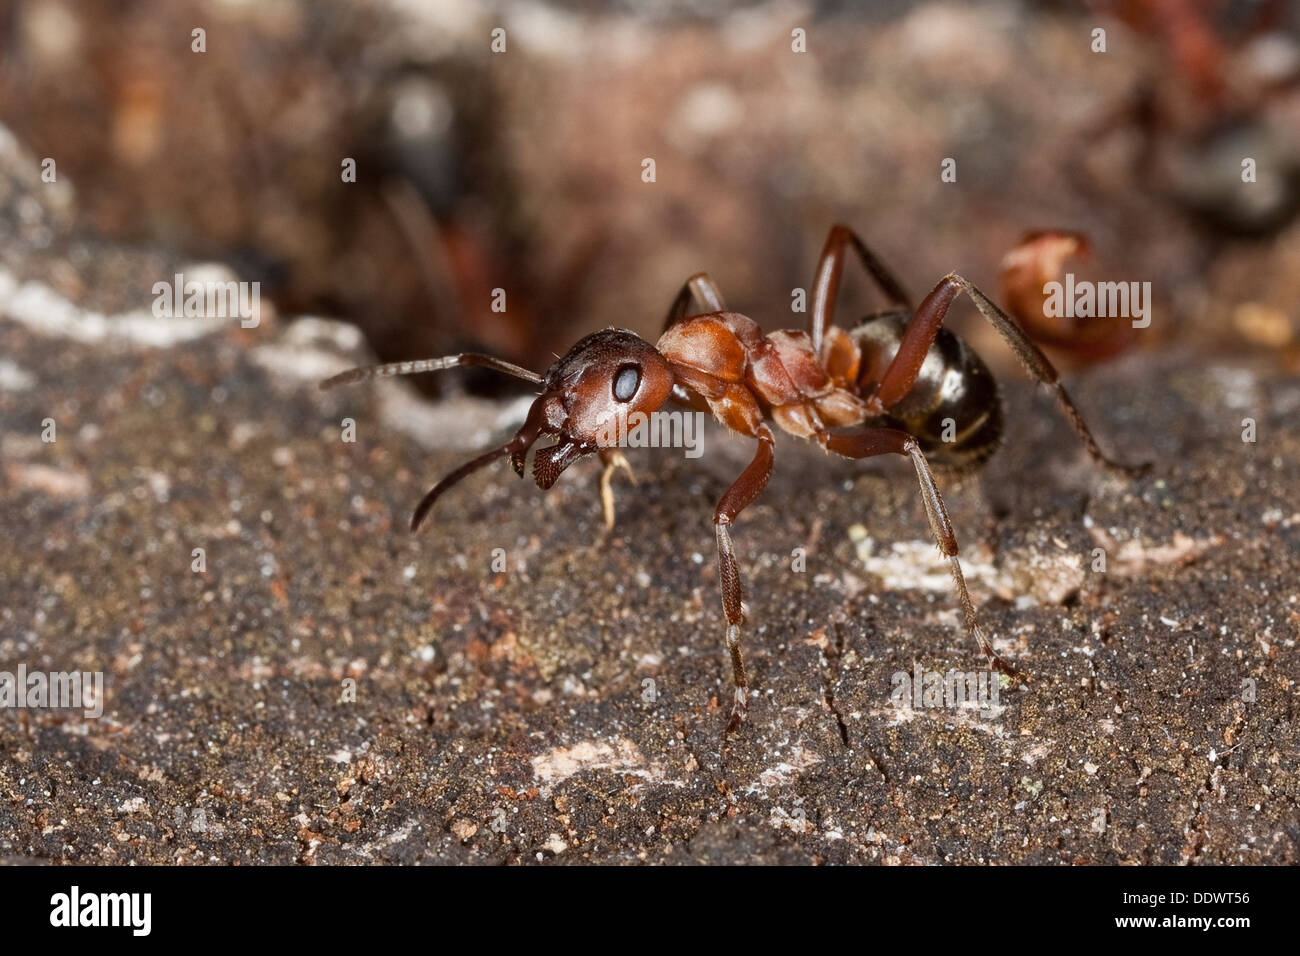 blood-red ant, slave-making ant, wood ant, Blutrote Raubameise, Blutrote Waldameise, Formica sanguinea, Raptiformica sanguinea - Stock Image